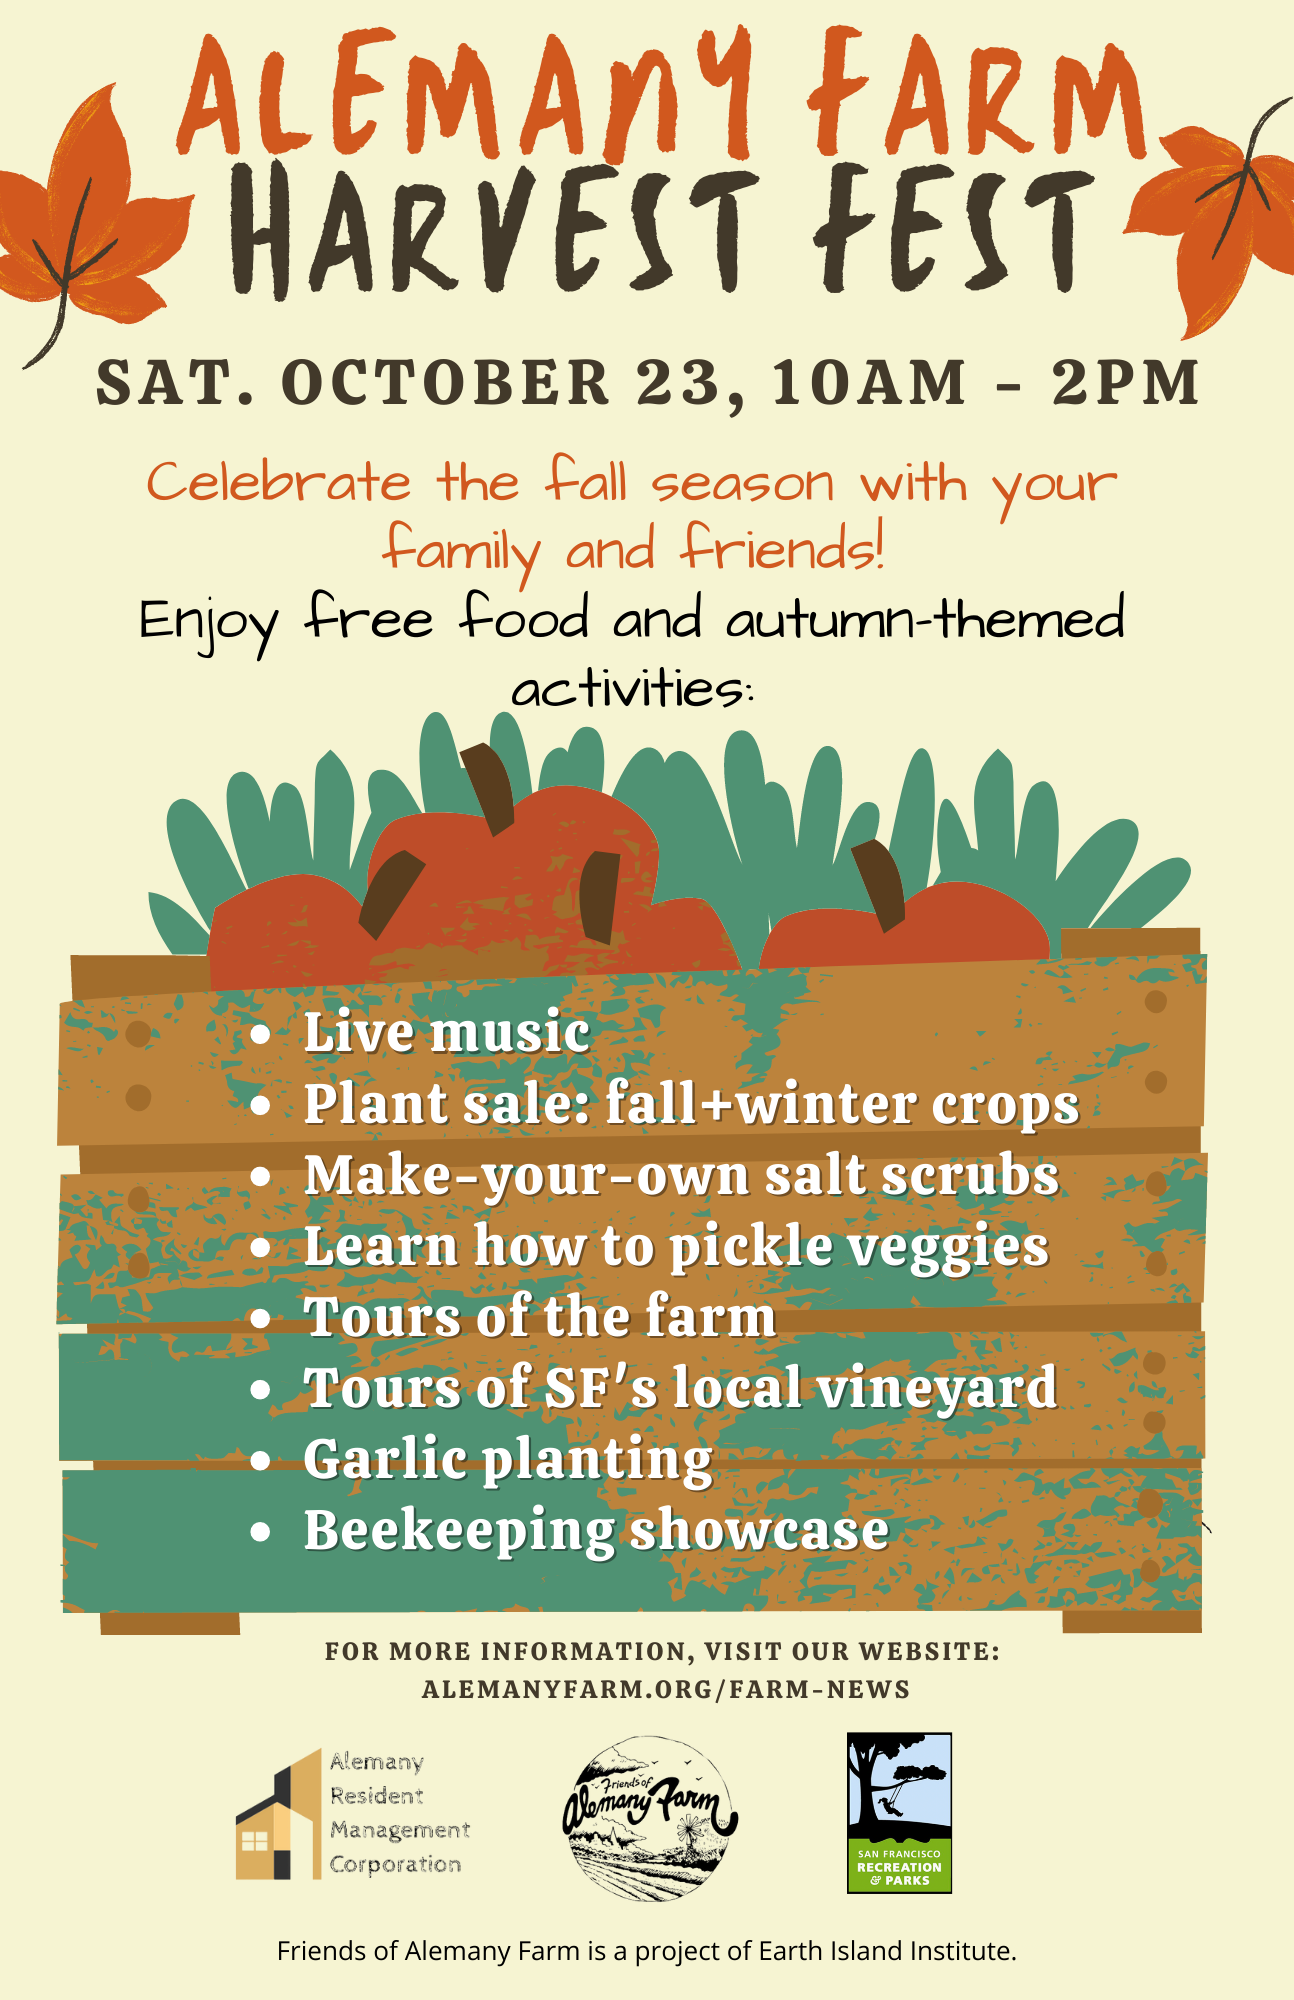 harvest festival flyer showing information included in body of the email